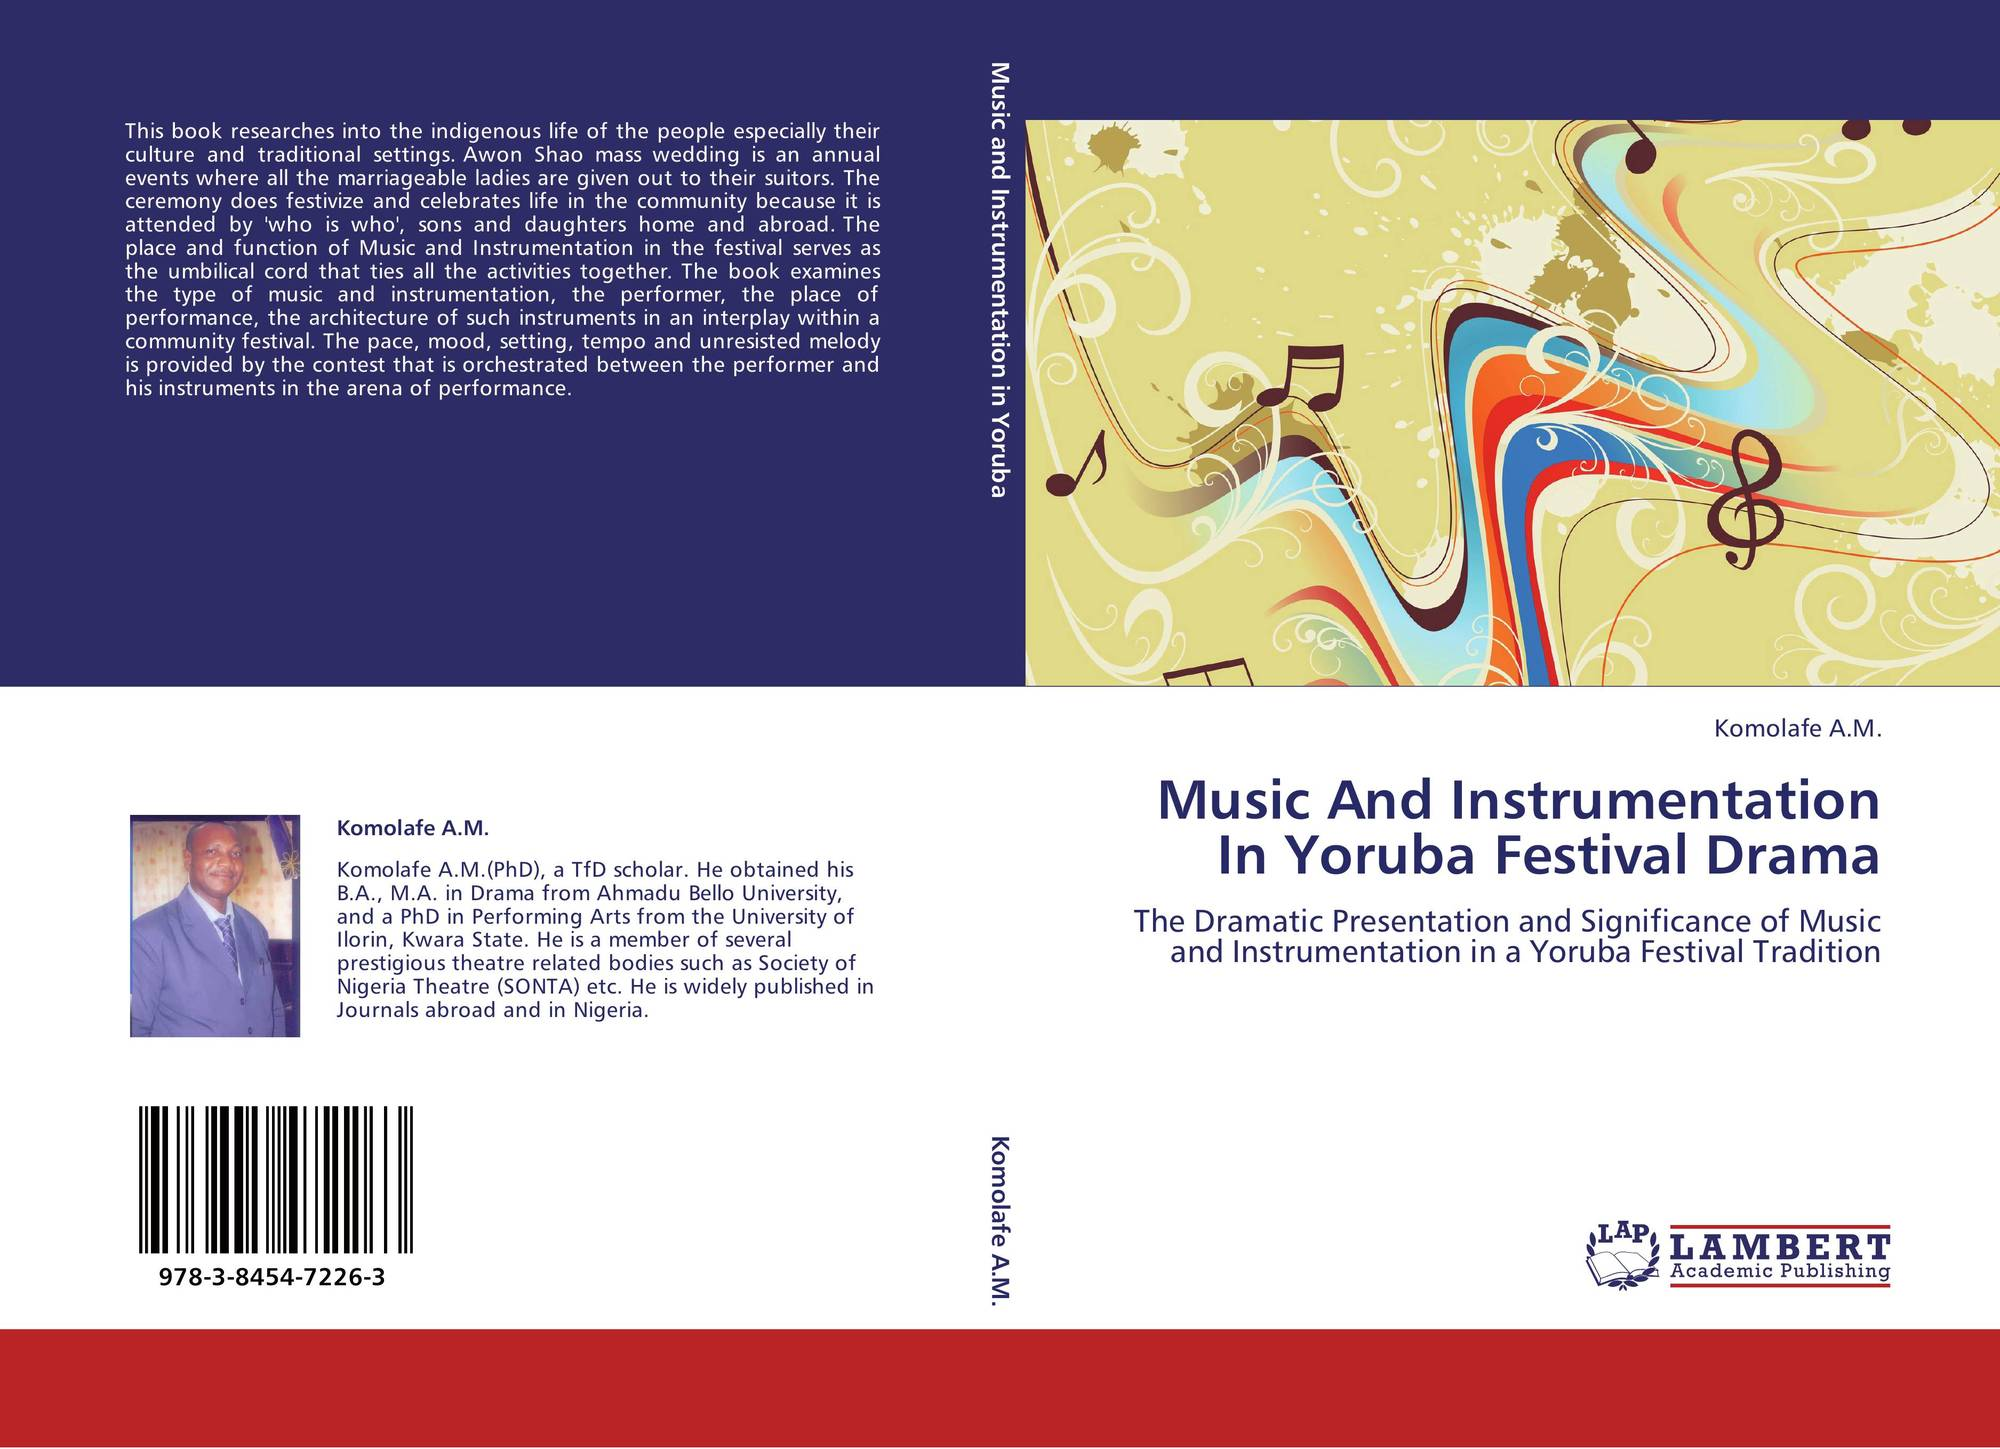 Search Results For Piping And Instrumentation Diagram Images Bookcover Of Music In Yoruba Festival Drama Omni Badge 9307e2201e5f762643a64561af3456be64a87707602f96b92ef18a9bbcada116